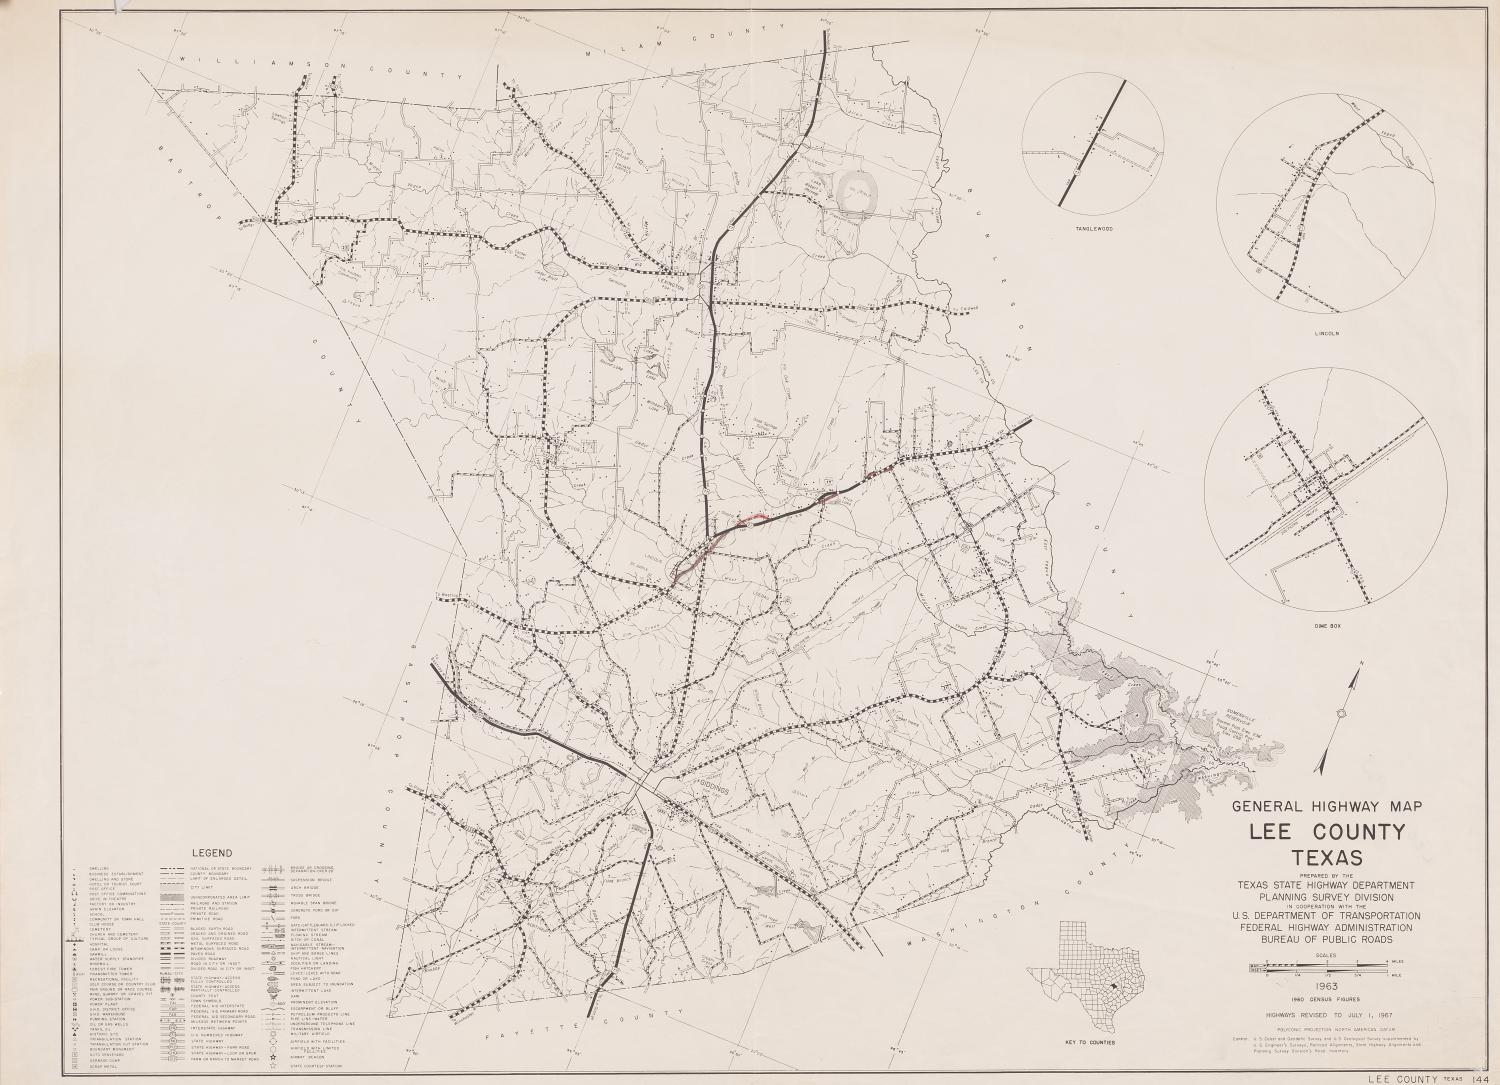 General Highway Map Lee County, Texas - The Portal to Texas History